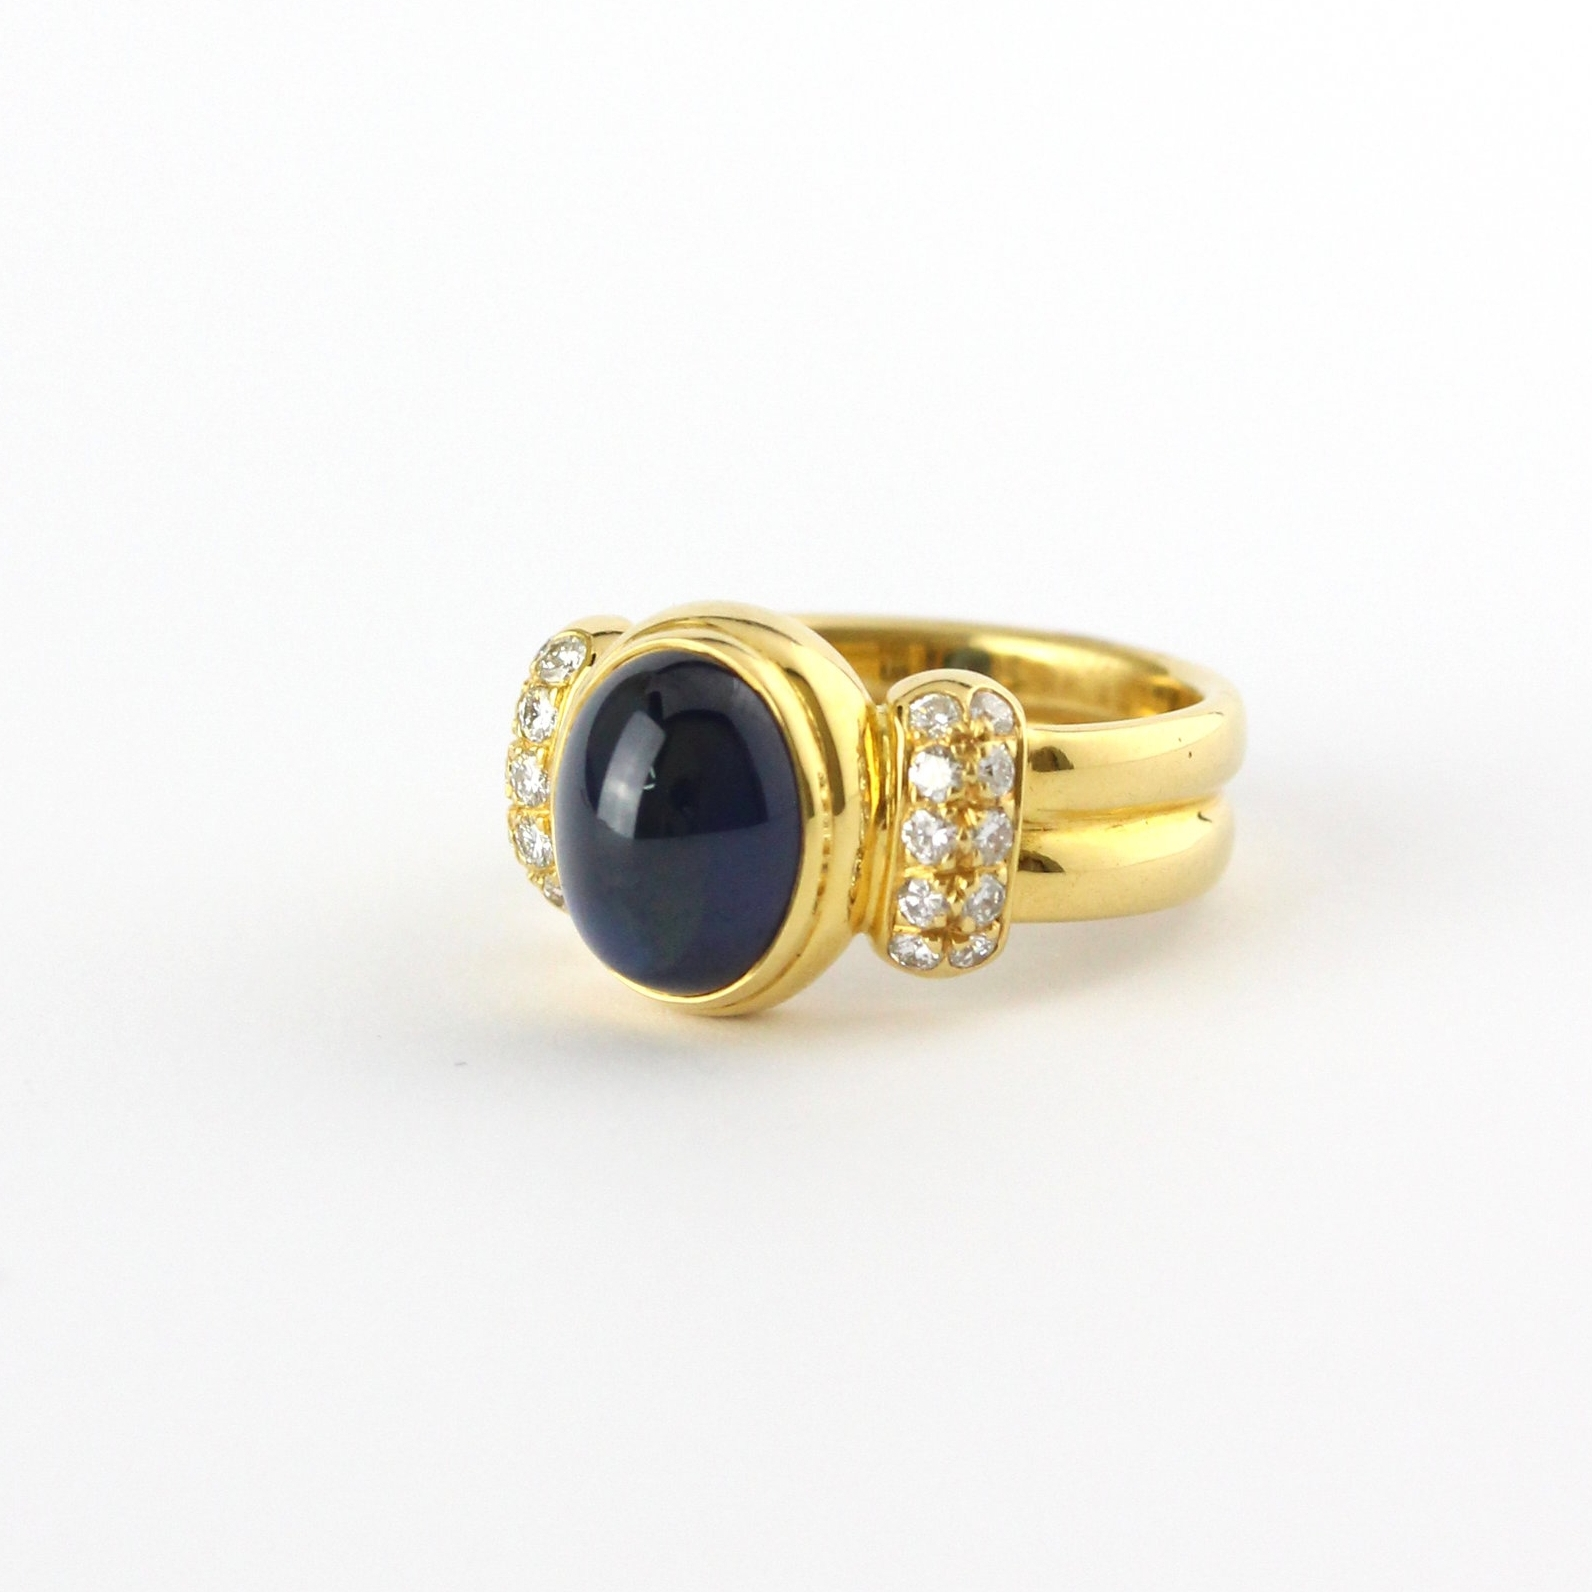 Cabochon sapphire ring with diamond shoulders set in yellow gold.